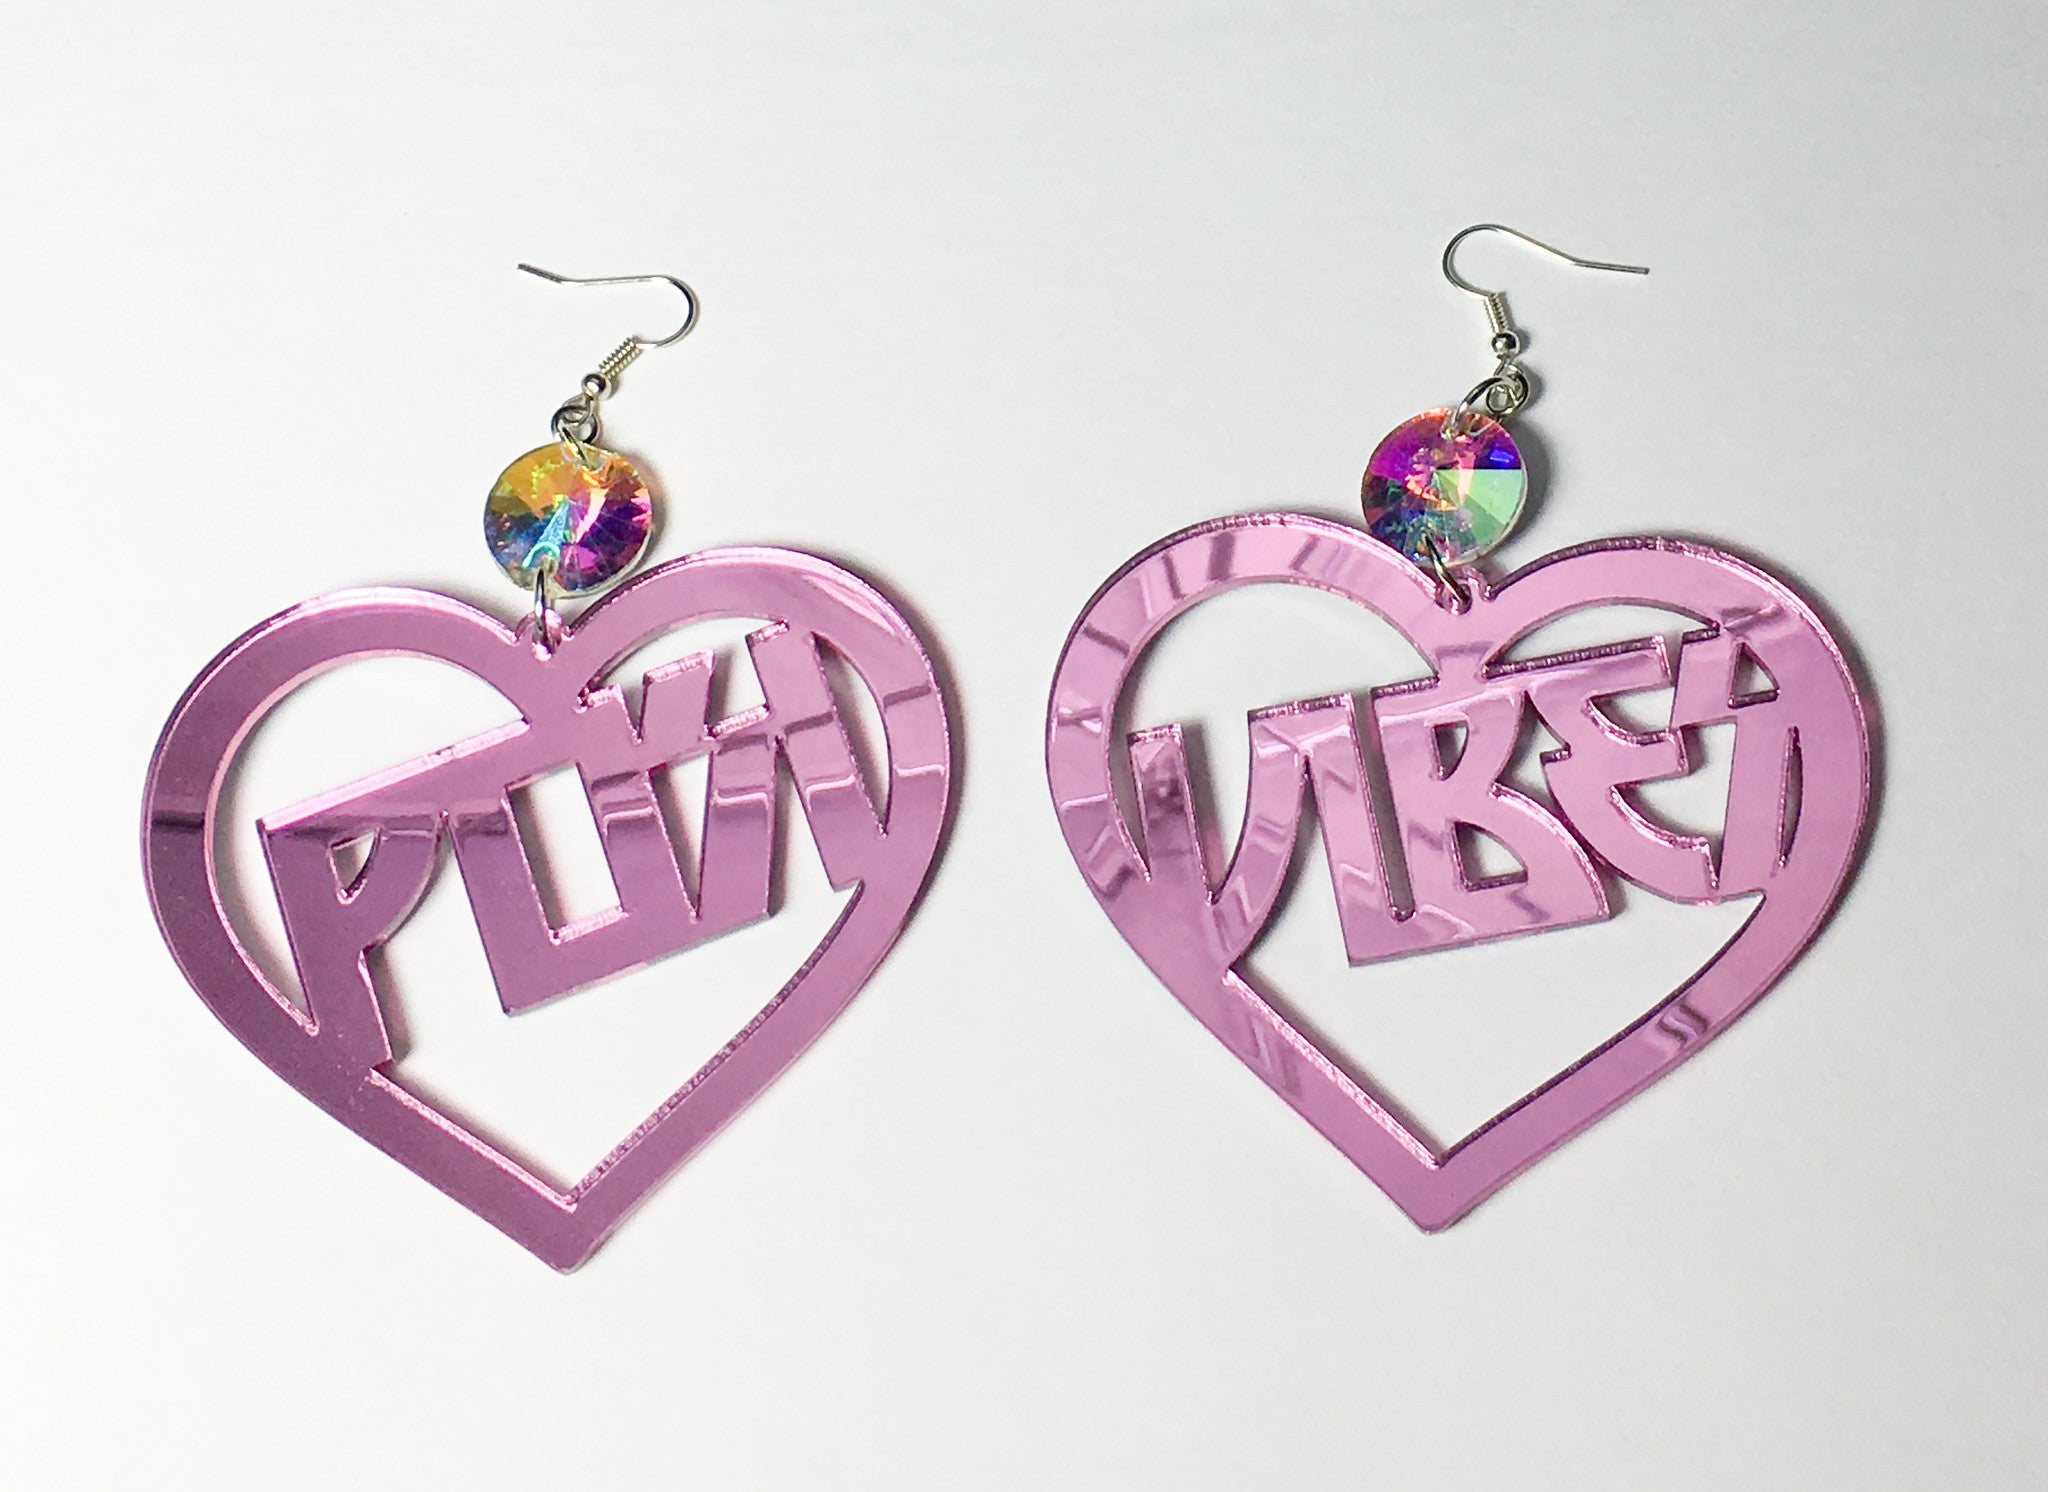 TRIXY STARR - Posi Vibes Earrings, Pink